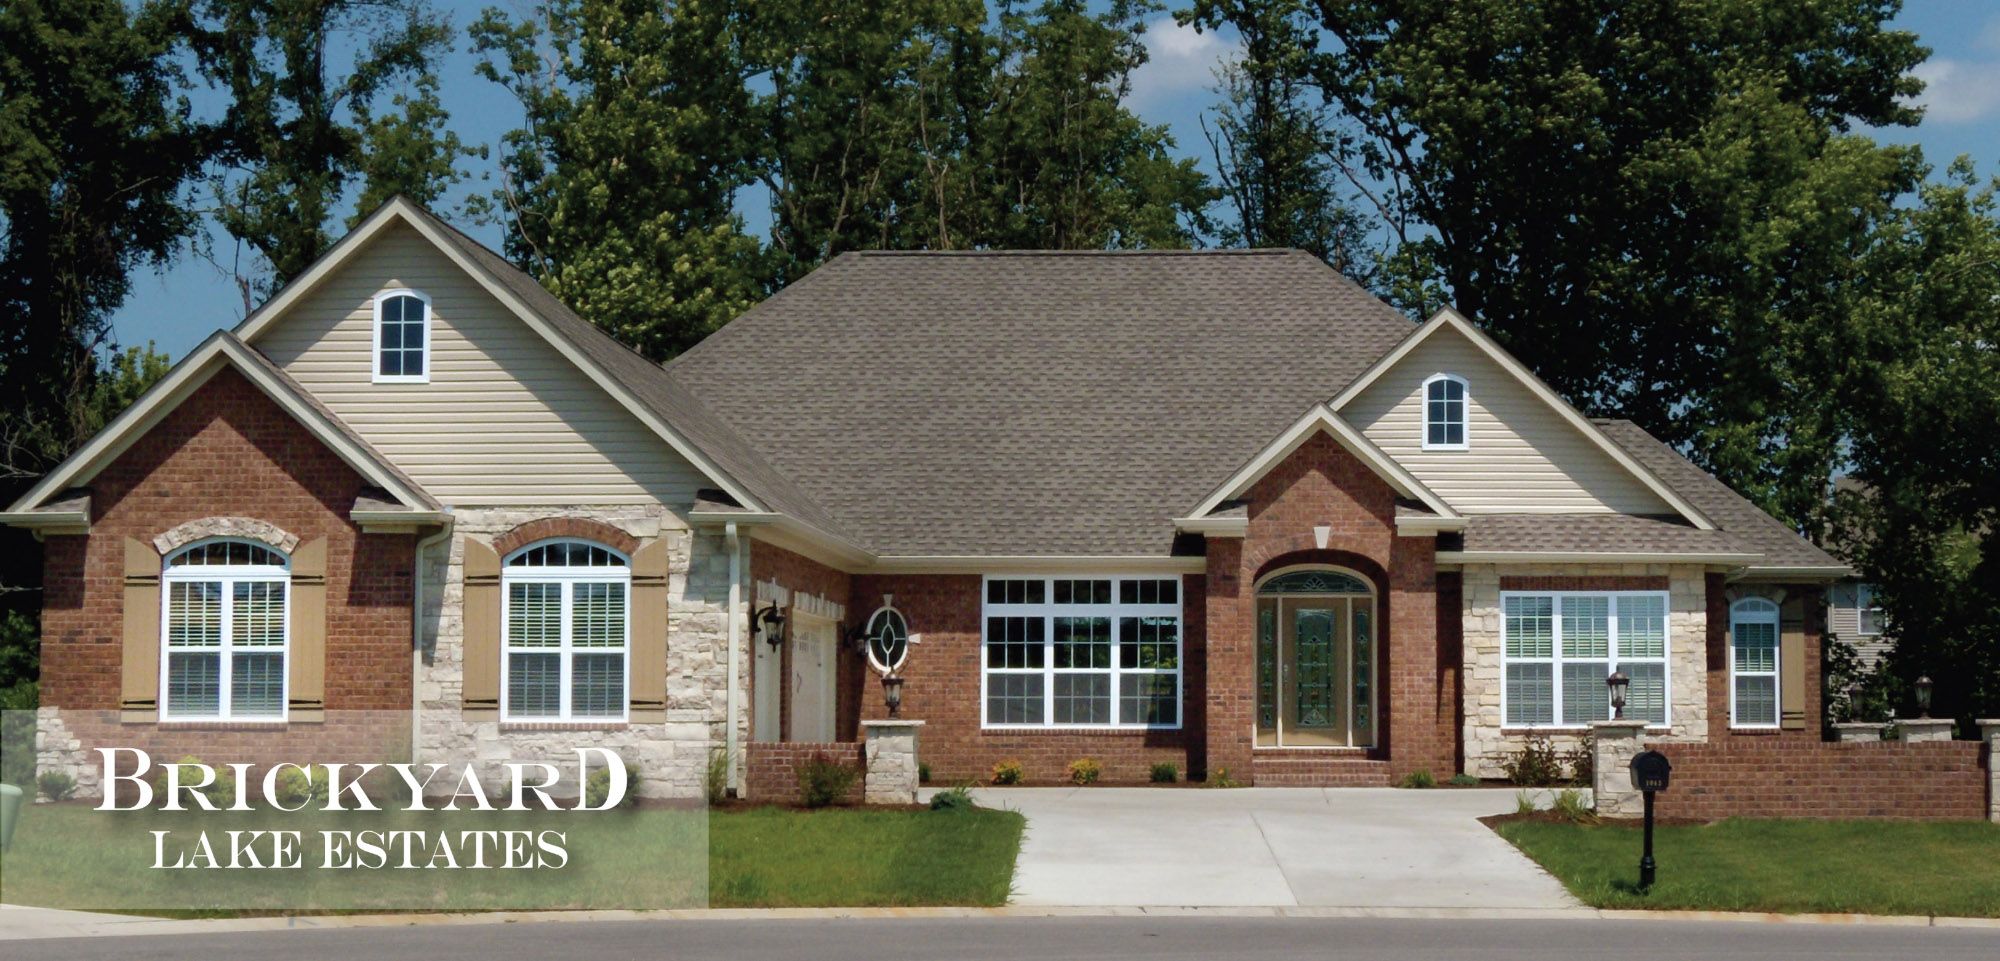 Brickyard Lake Estates Community by Homes by Deesign